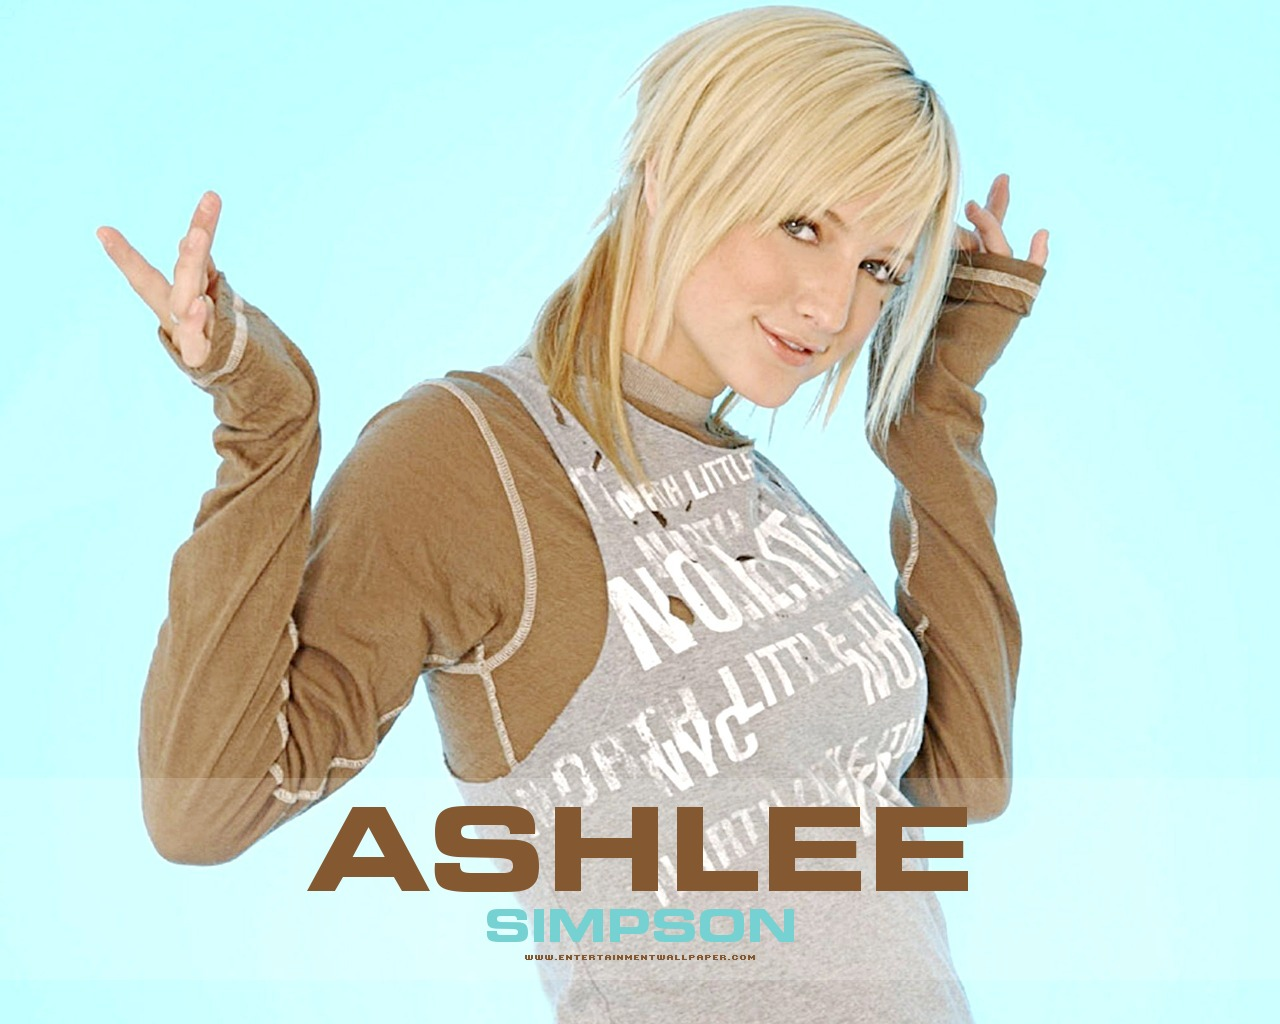 Ashlee Simpson - Ashlee Simpson Wallpaper (827126) - Fanpop fanclubs